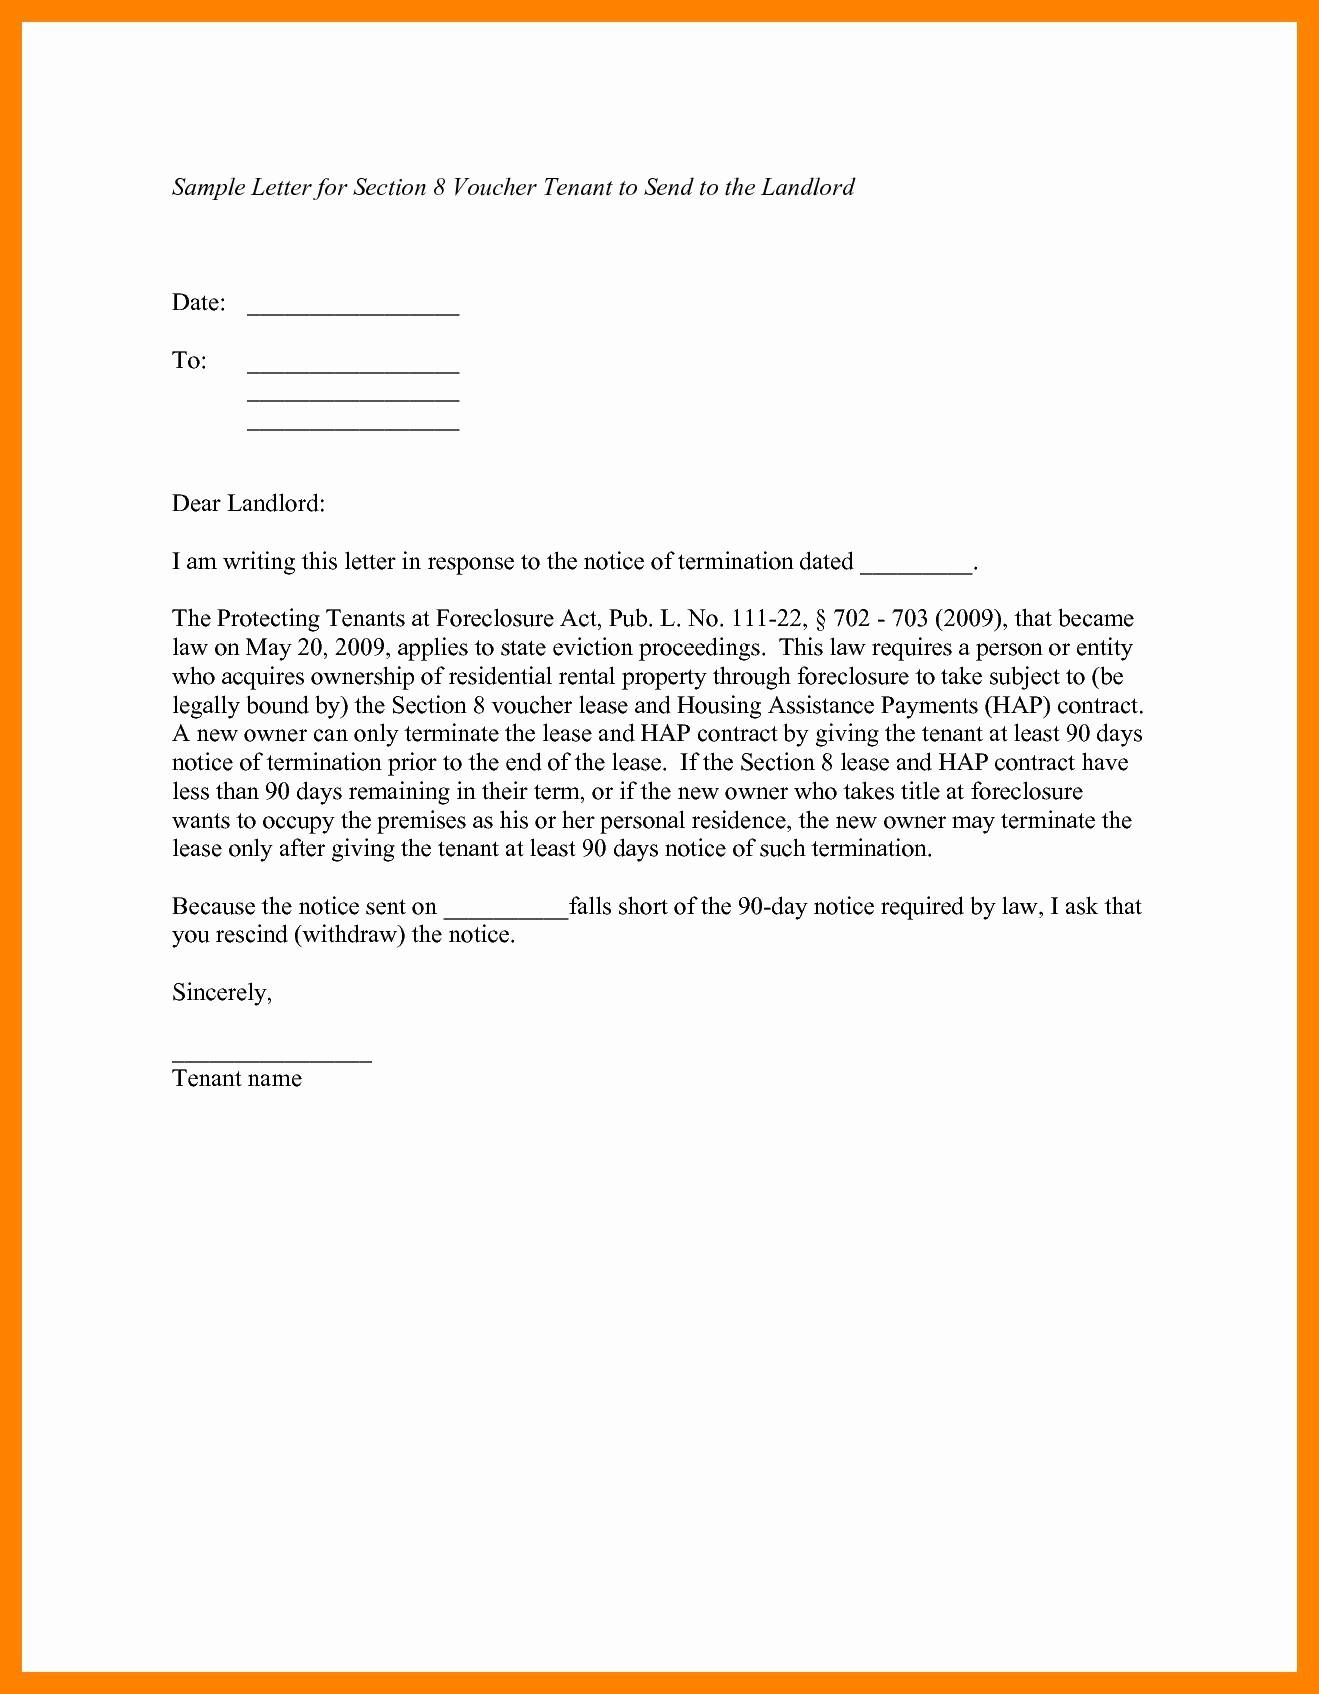 Landlord Notice Letter to Tenant Template - Notice Letter to Landlord Template New Letter Template for Giving